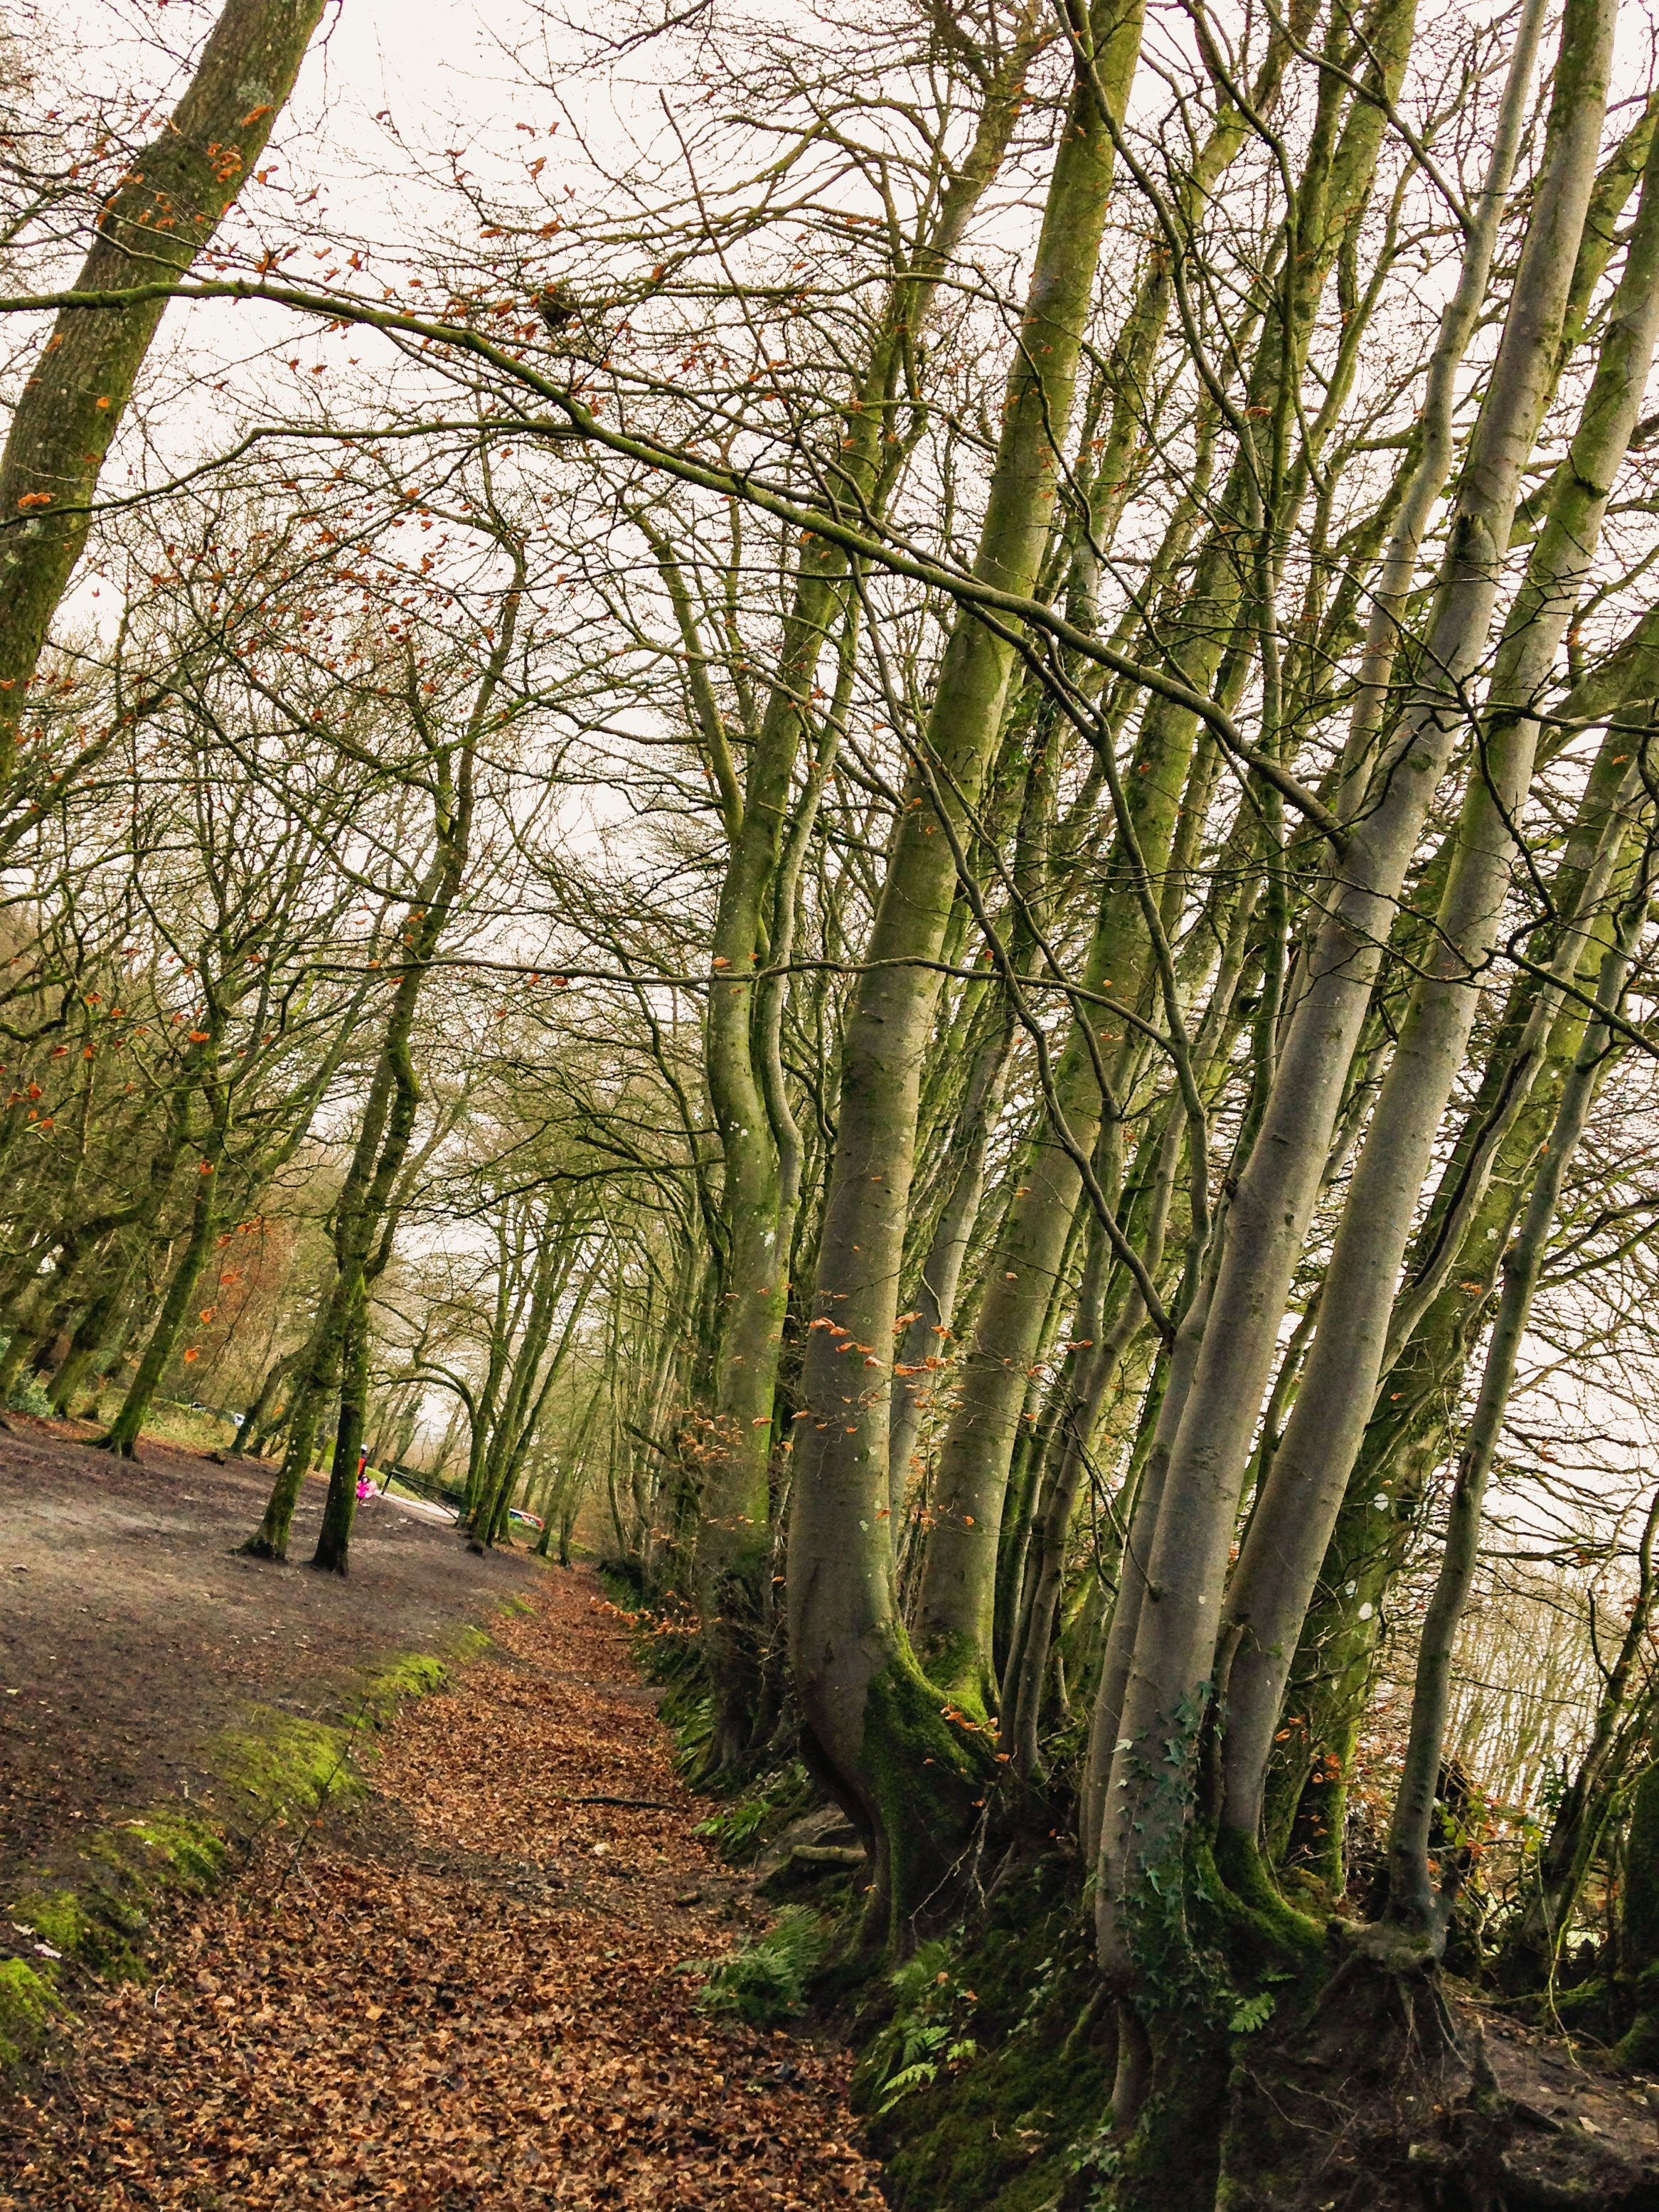 The quirky tree lined avenue leading up to Wellington Monument has all kinds of hide and seek potential